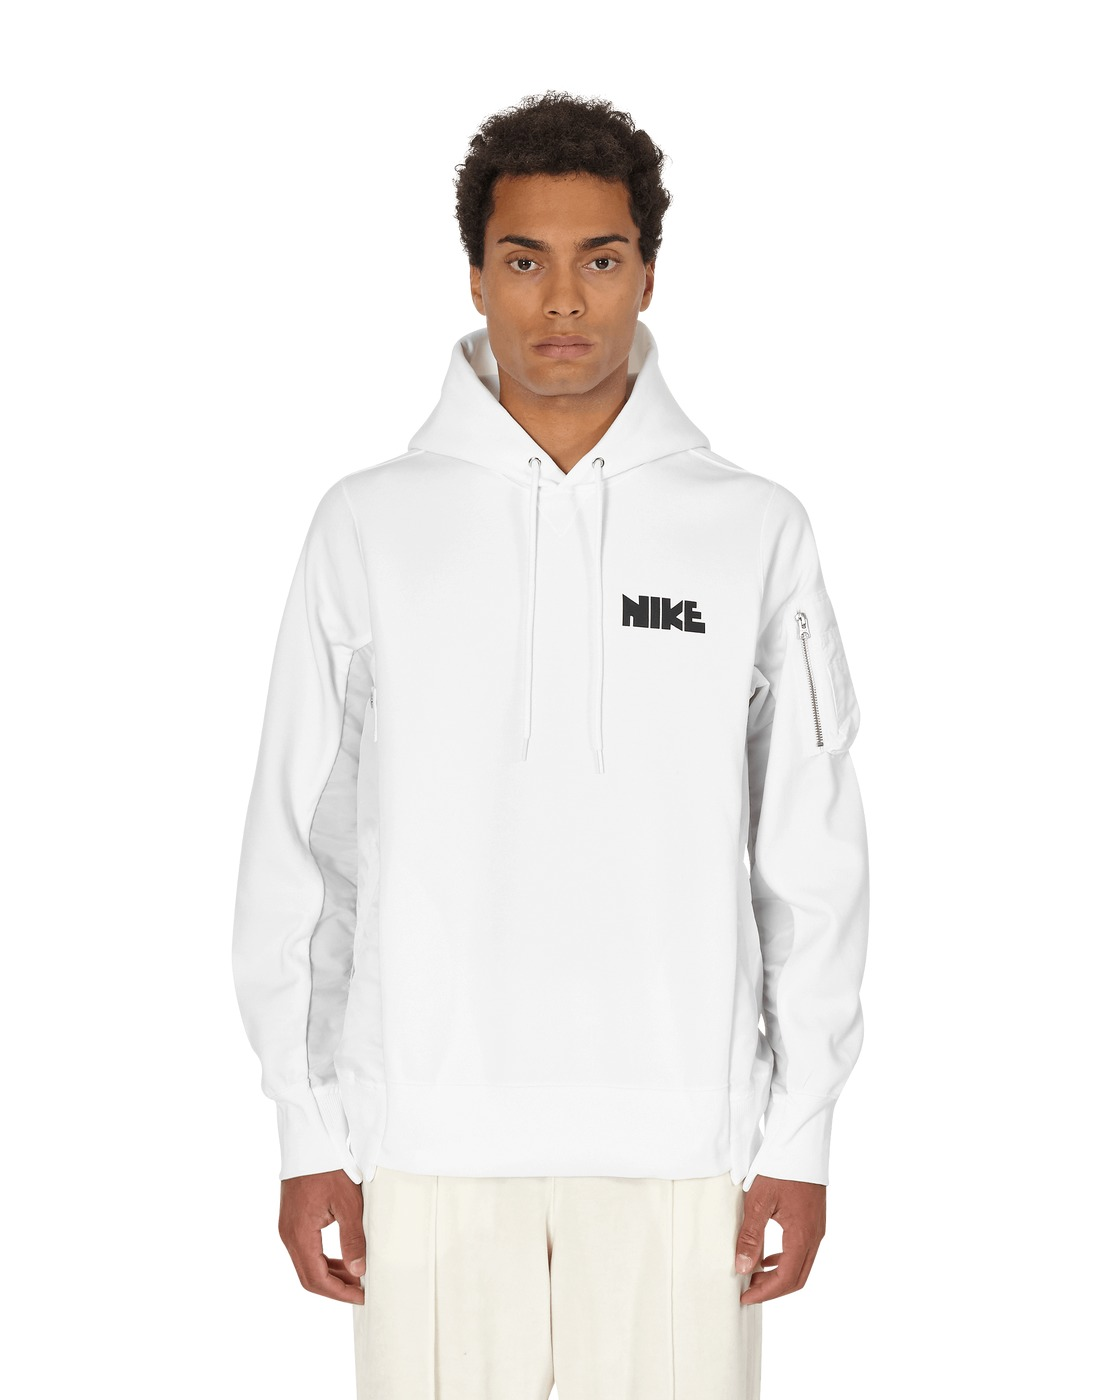 Nike Special Project Sacai Hooded Sweatshirt White